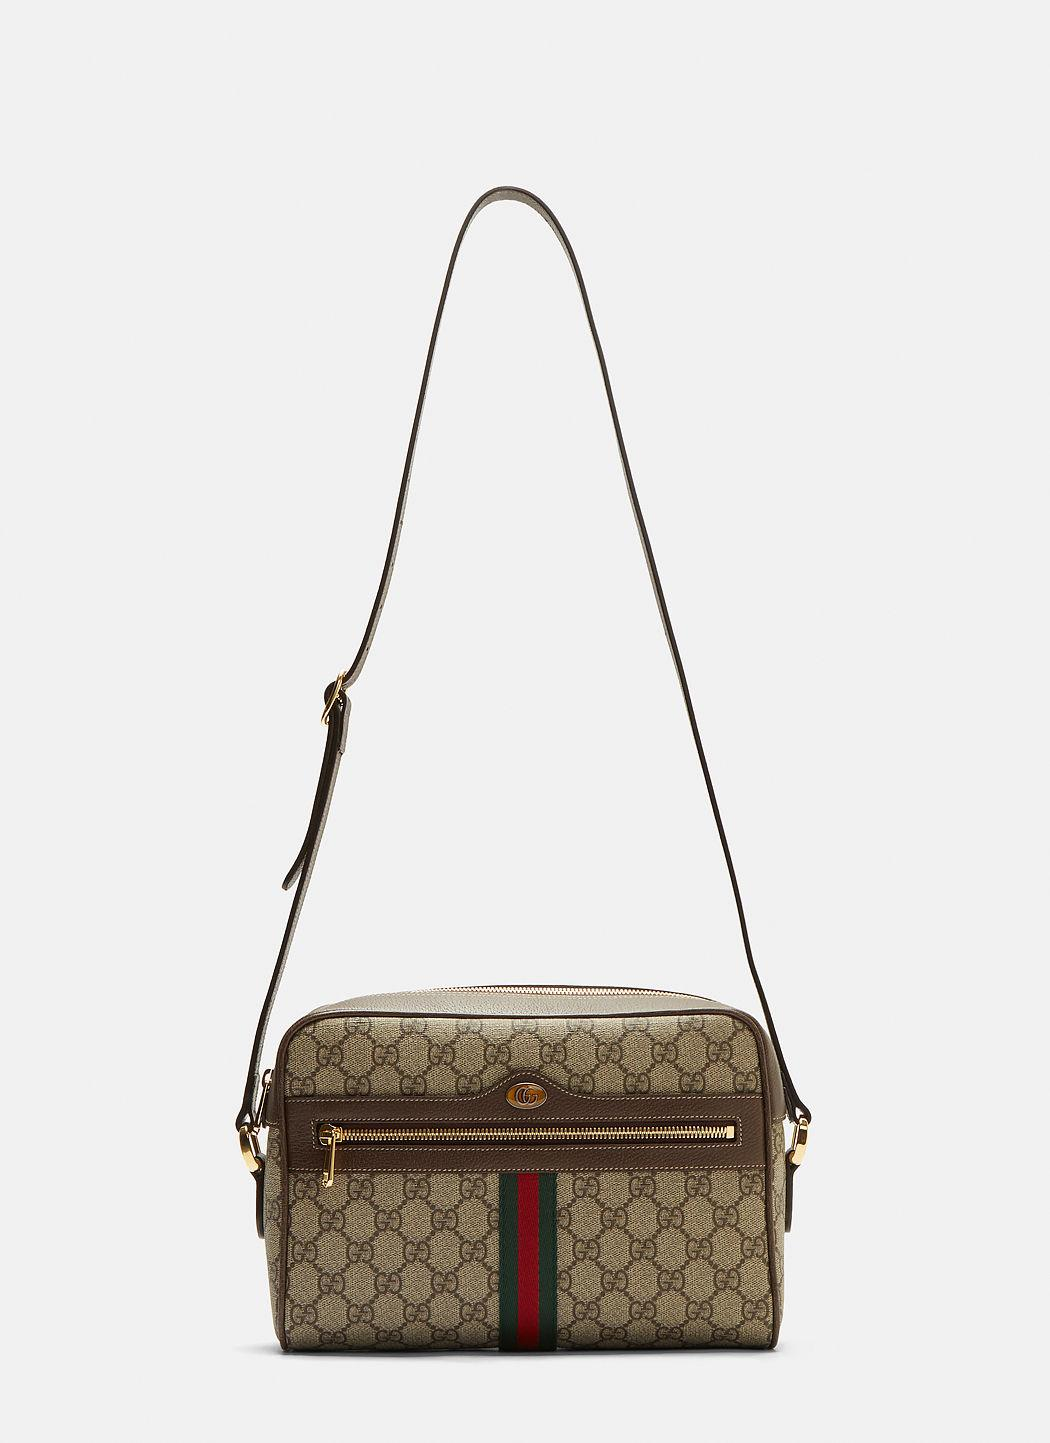 5103a069c9e432 Gucci Ophidia Gg Supreme Camera Bag In Brown | ModeSens